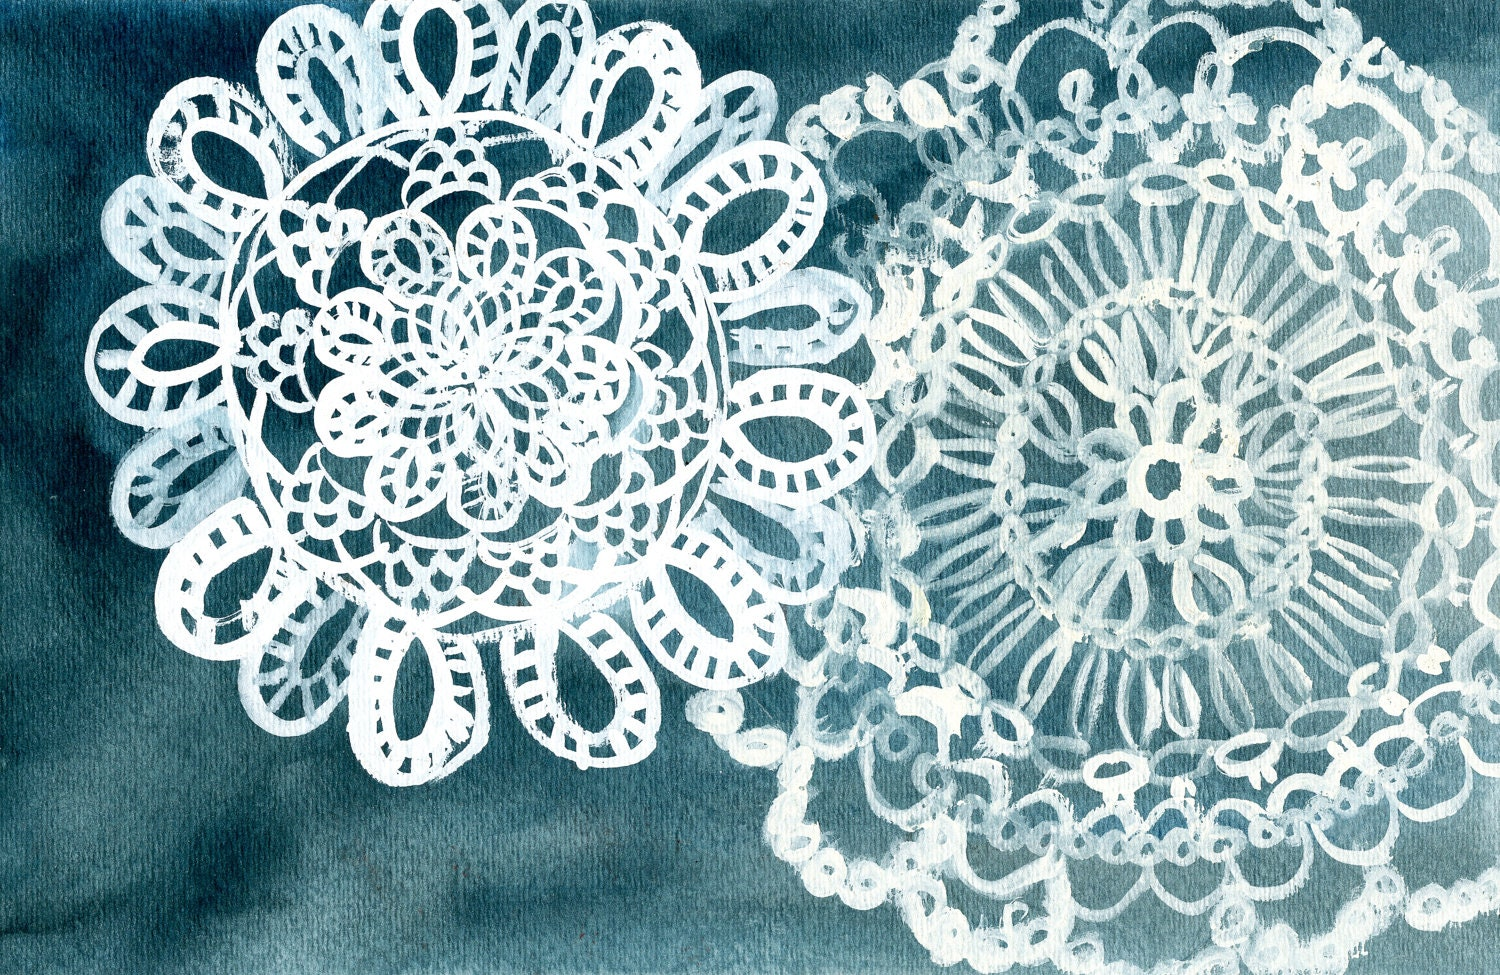 Doily Lace Pattern Print - Print of Doily Watercolor Painting 5x7 - FrancesMarin